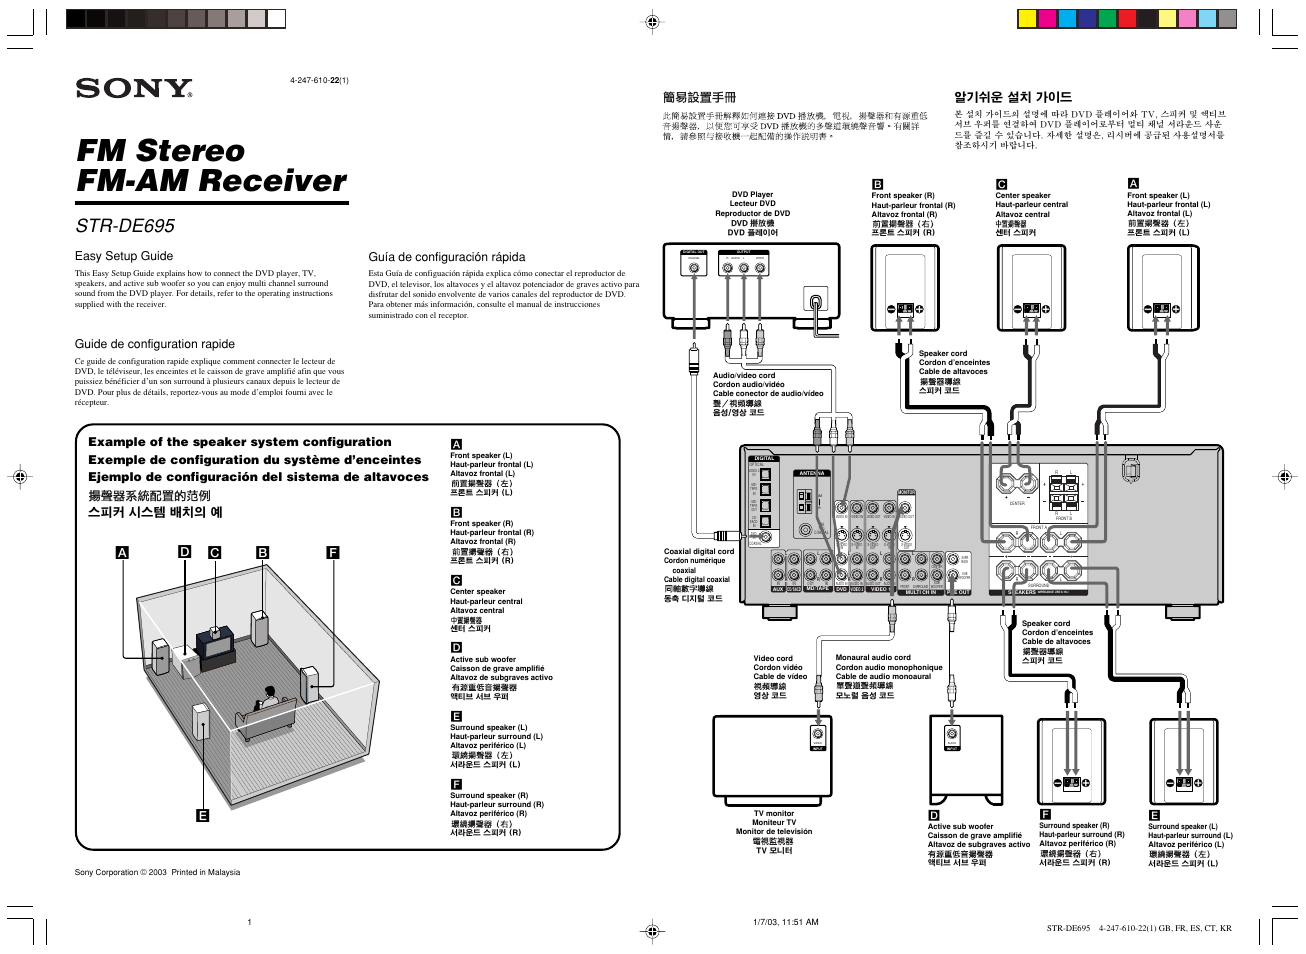 Yamaha R 95 Manual Stereo Am Fm Receiver Manual Guide